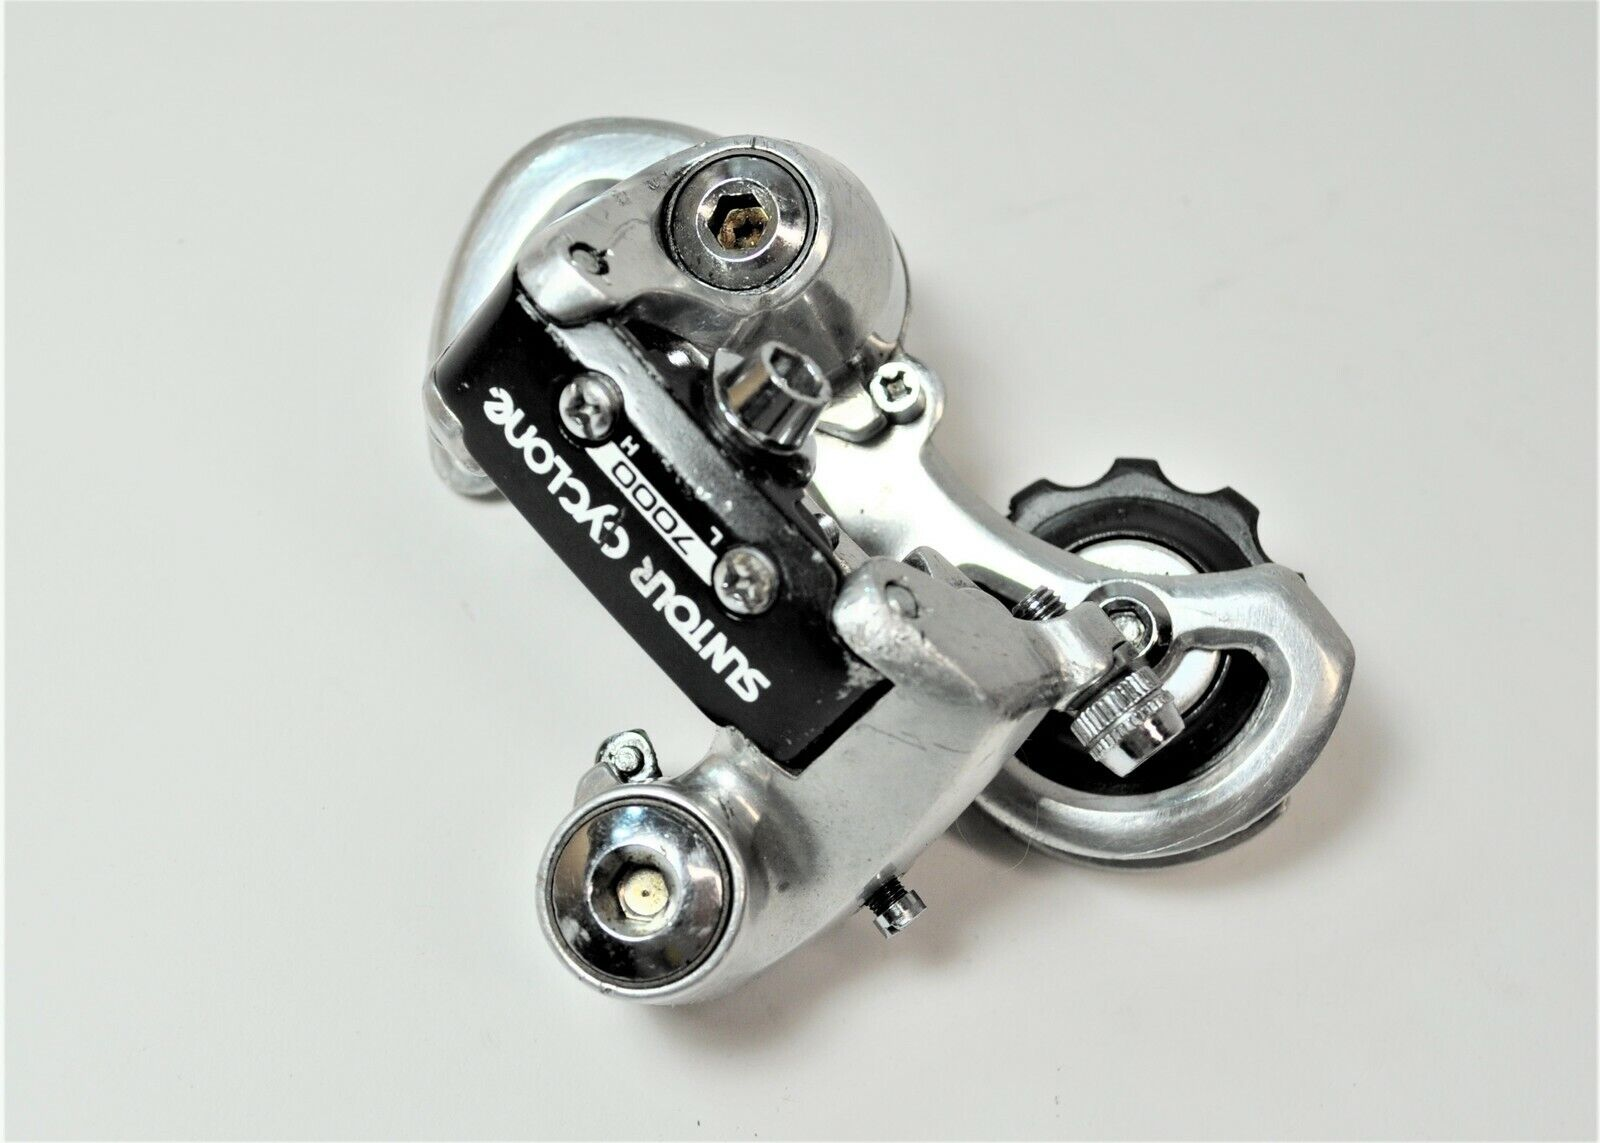 MAEDA SUNTOUR CYCLONE 7000 BICYCLE  SHORT CAGE REAR DERAILLEUR RD-CL10  the newest brands outlet online